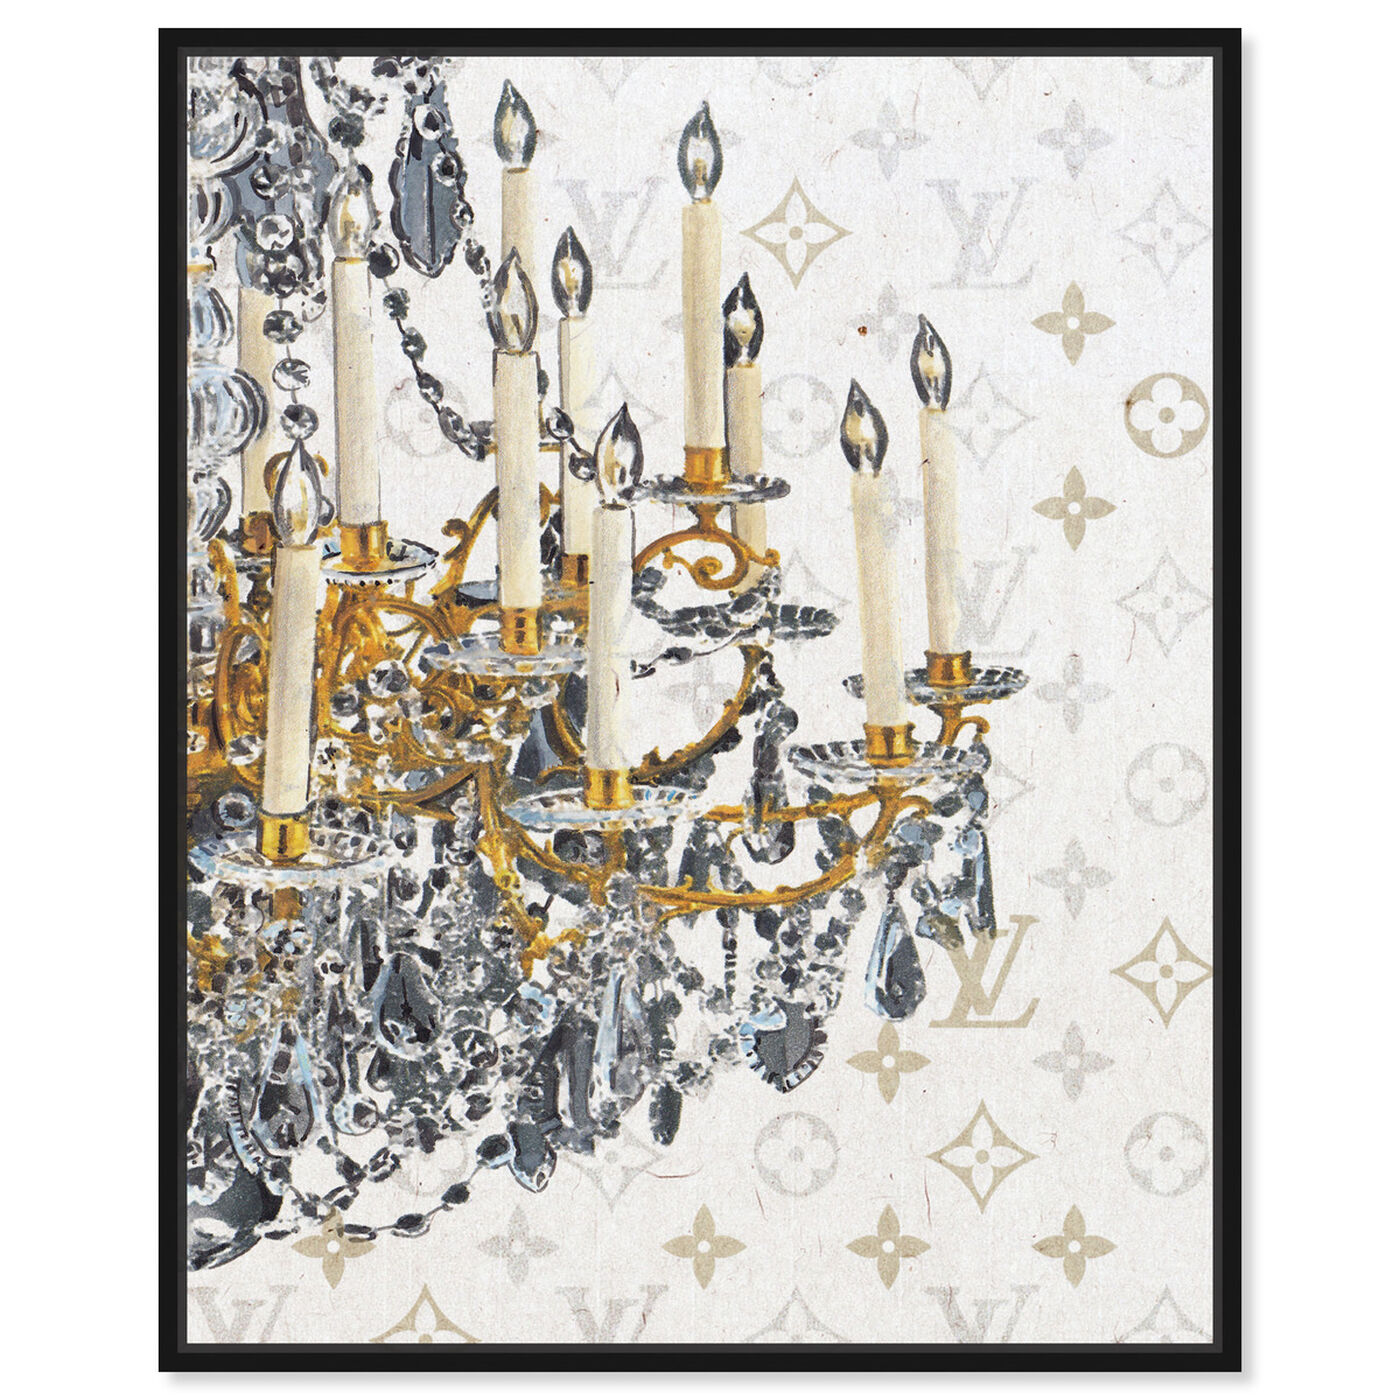 Front view of Fancy Light II featuring fashion and glam and chandeliers art.